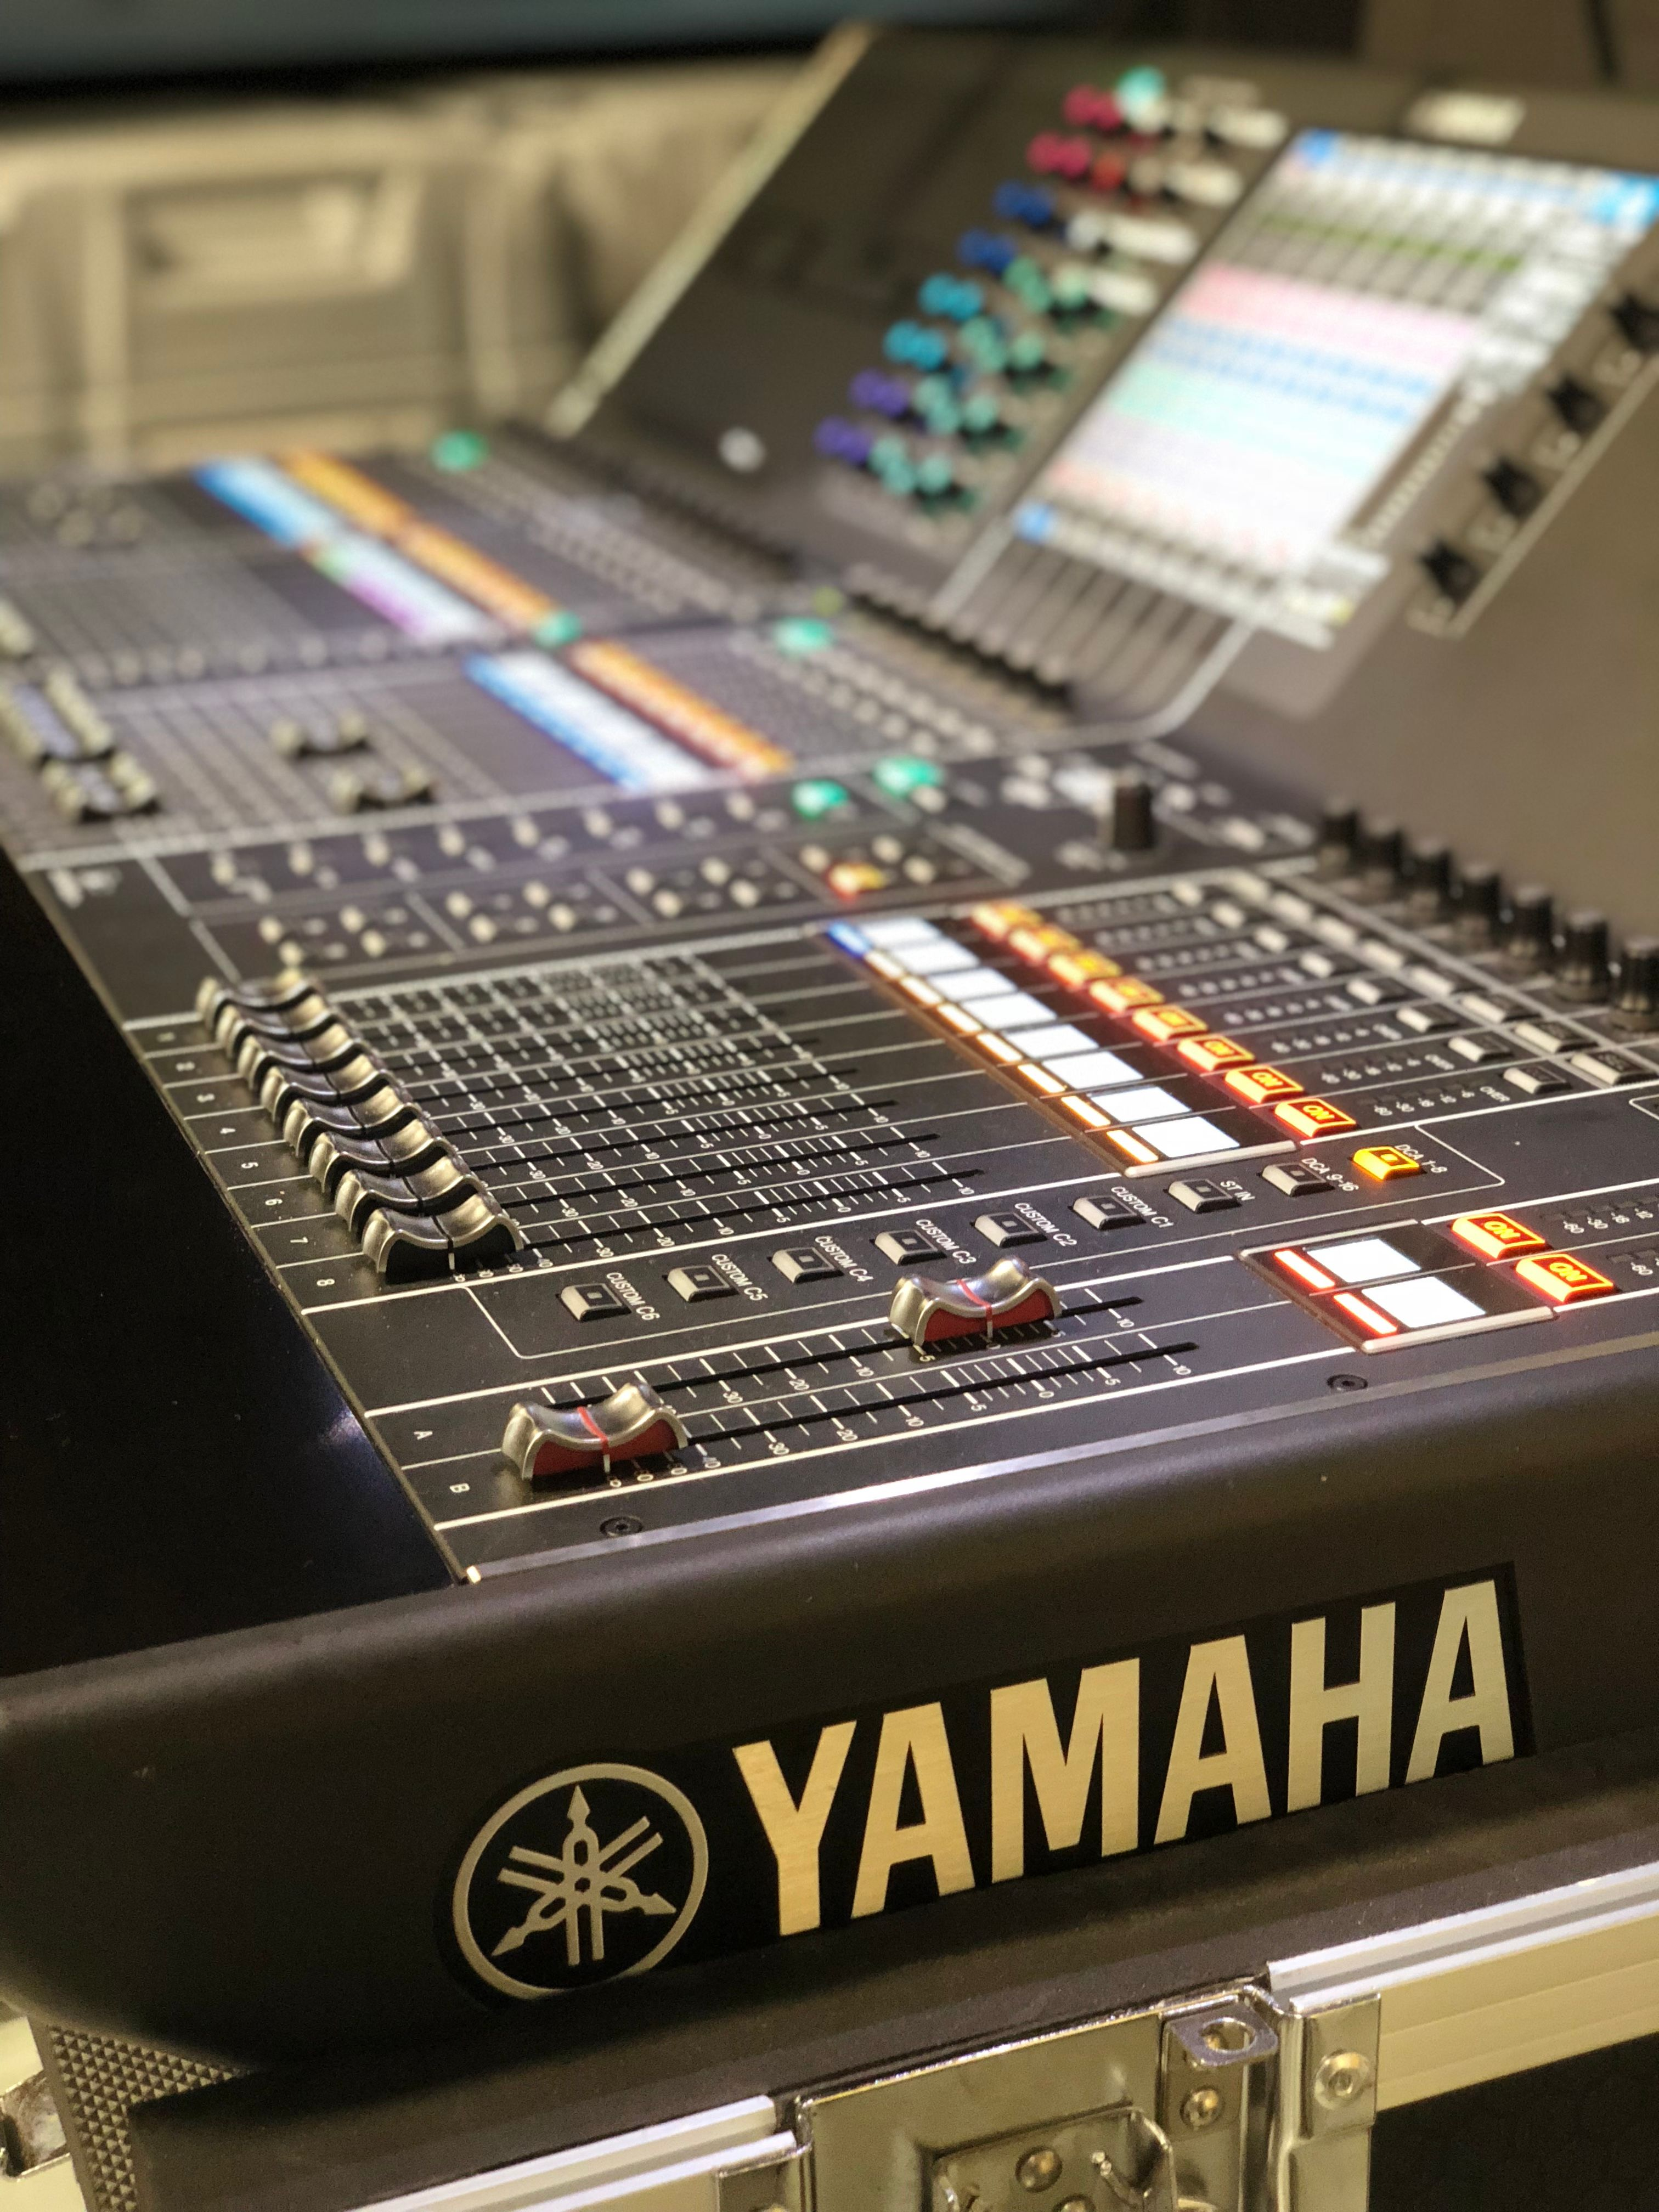 A close-up image of the Yamaha CL5 audio mixer